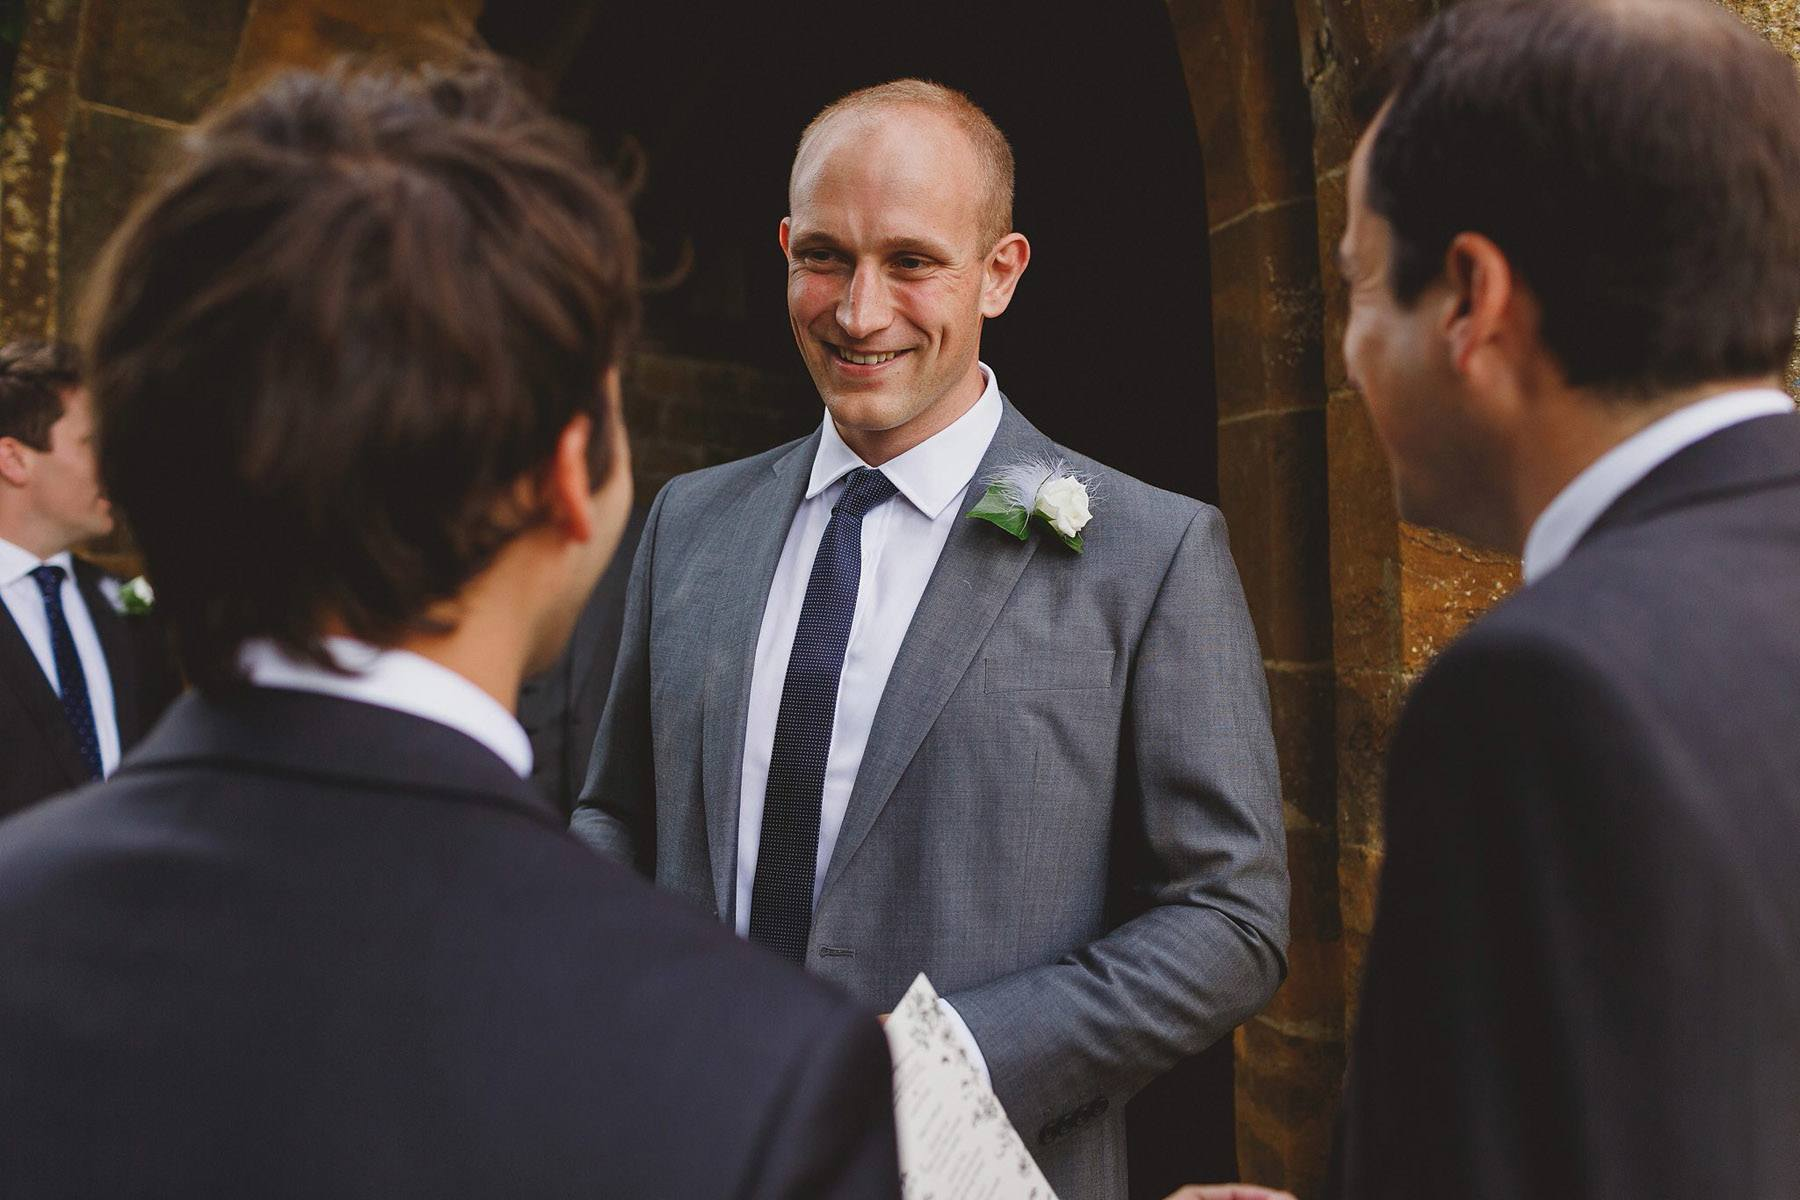 oxfordshire-wedding-photographer-022